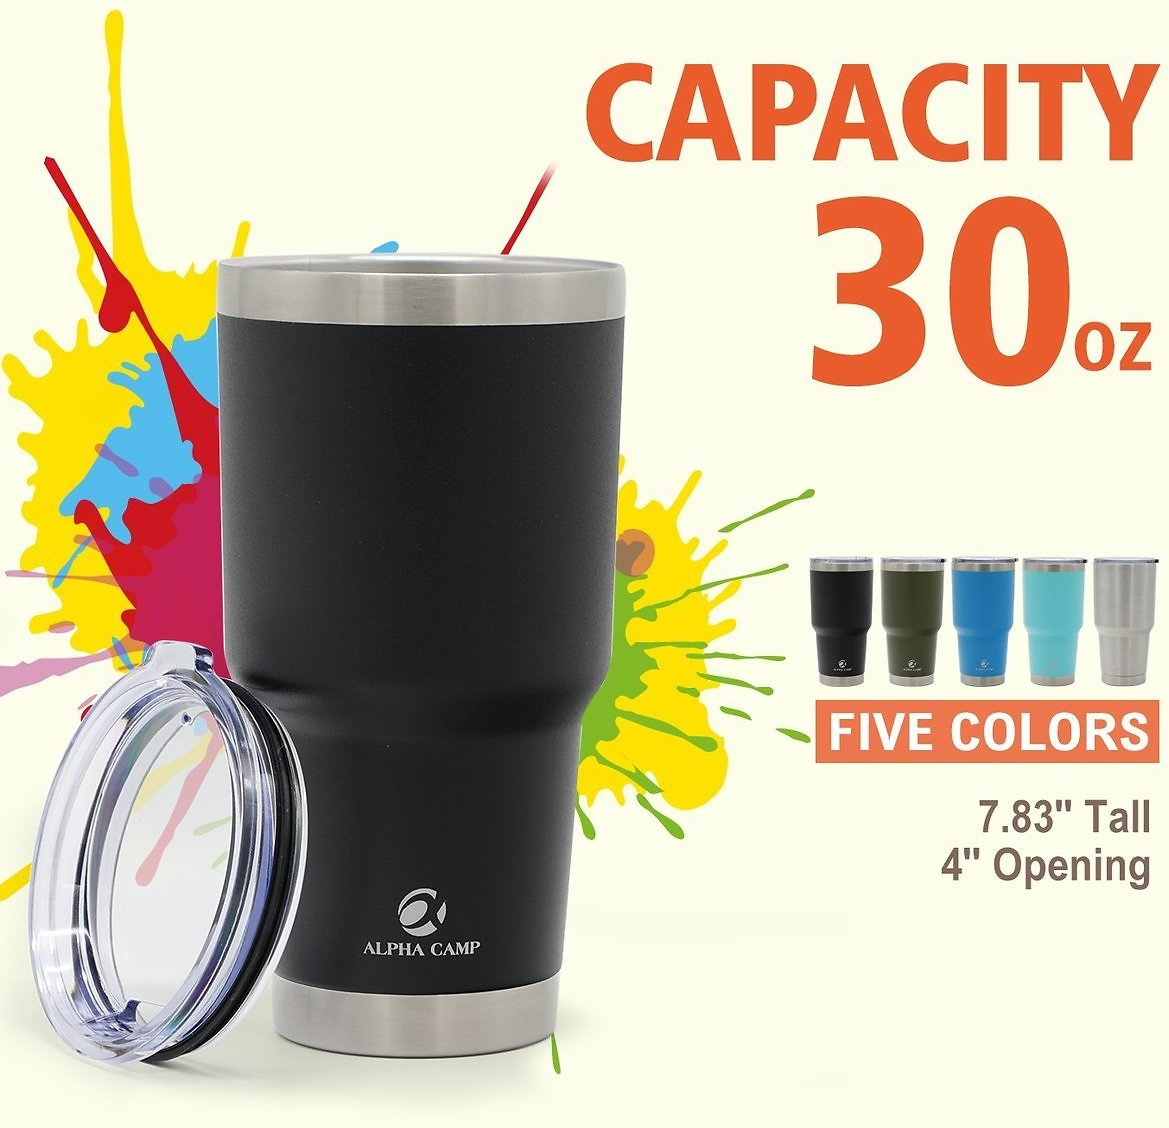 ALPHA CAMP 30 OZ Stainless Steel Tumbler